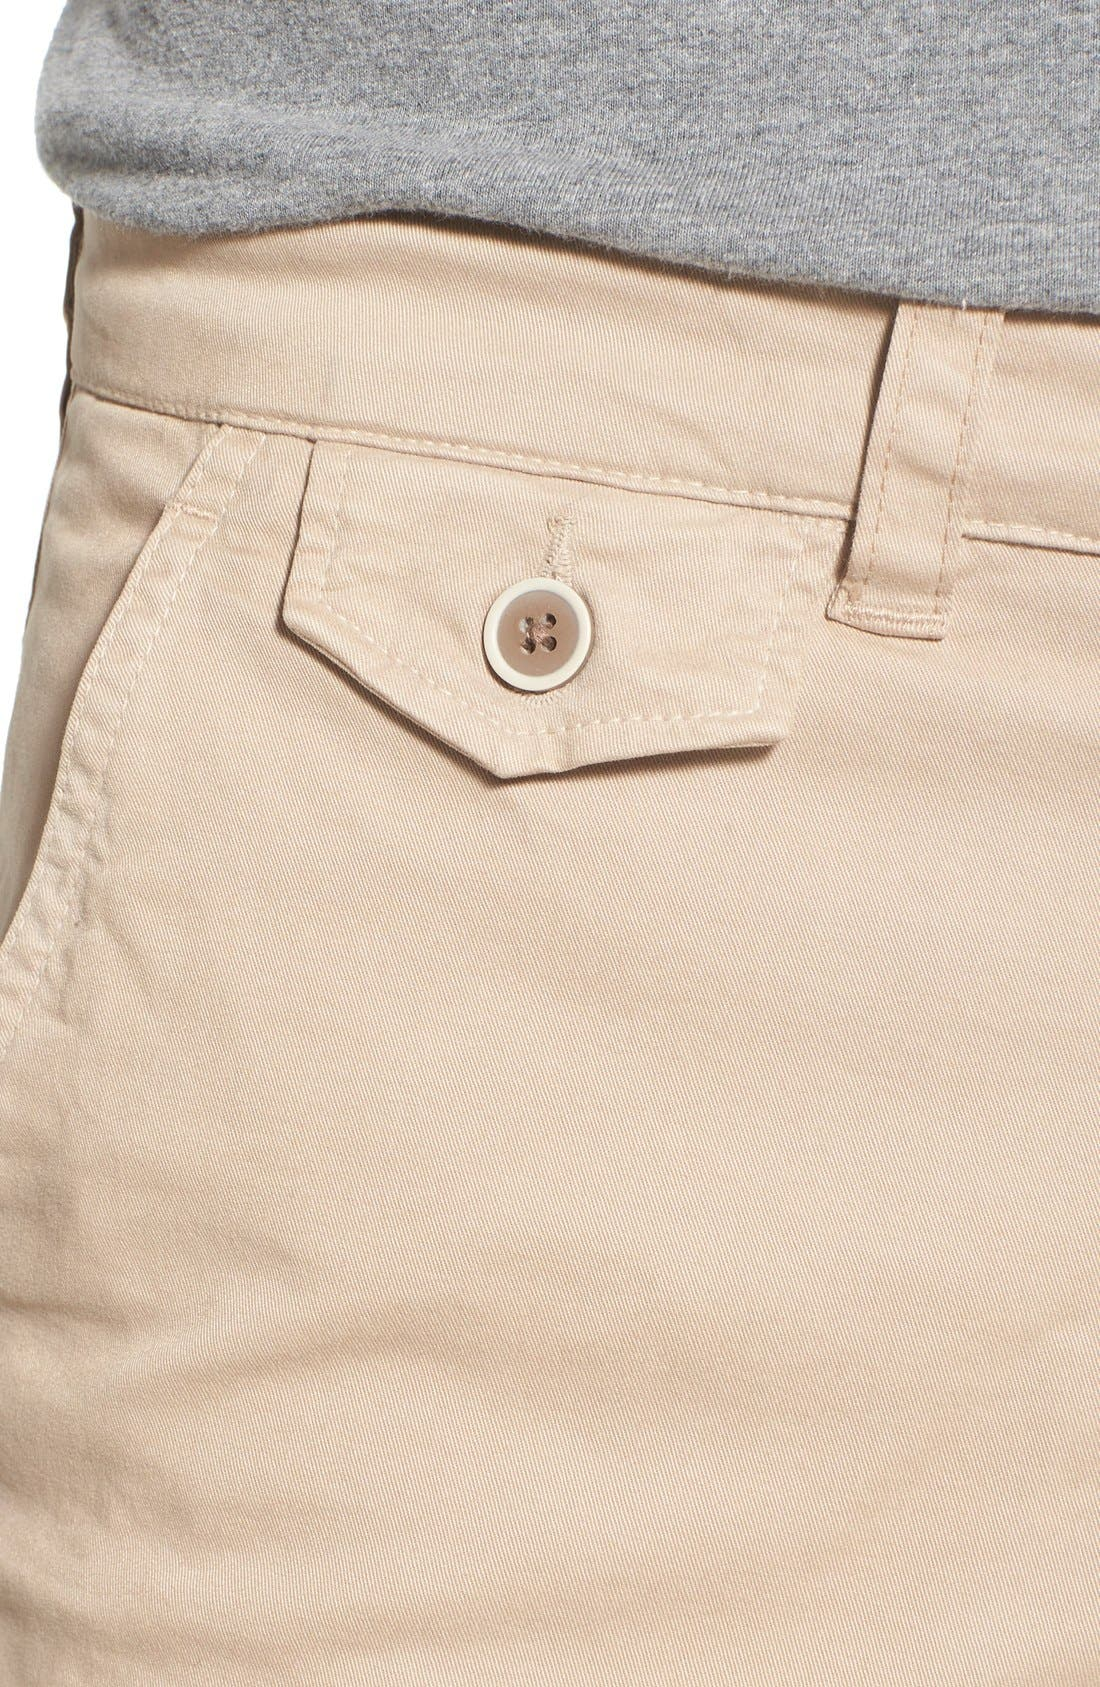 'Sunny' Stretch Chino Shorts,                             Alternate thumbnail 27, color,